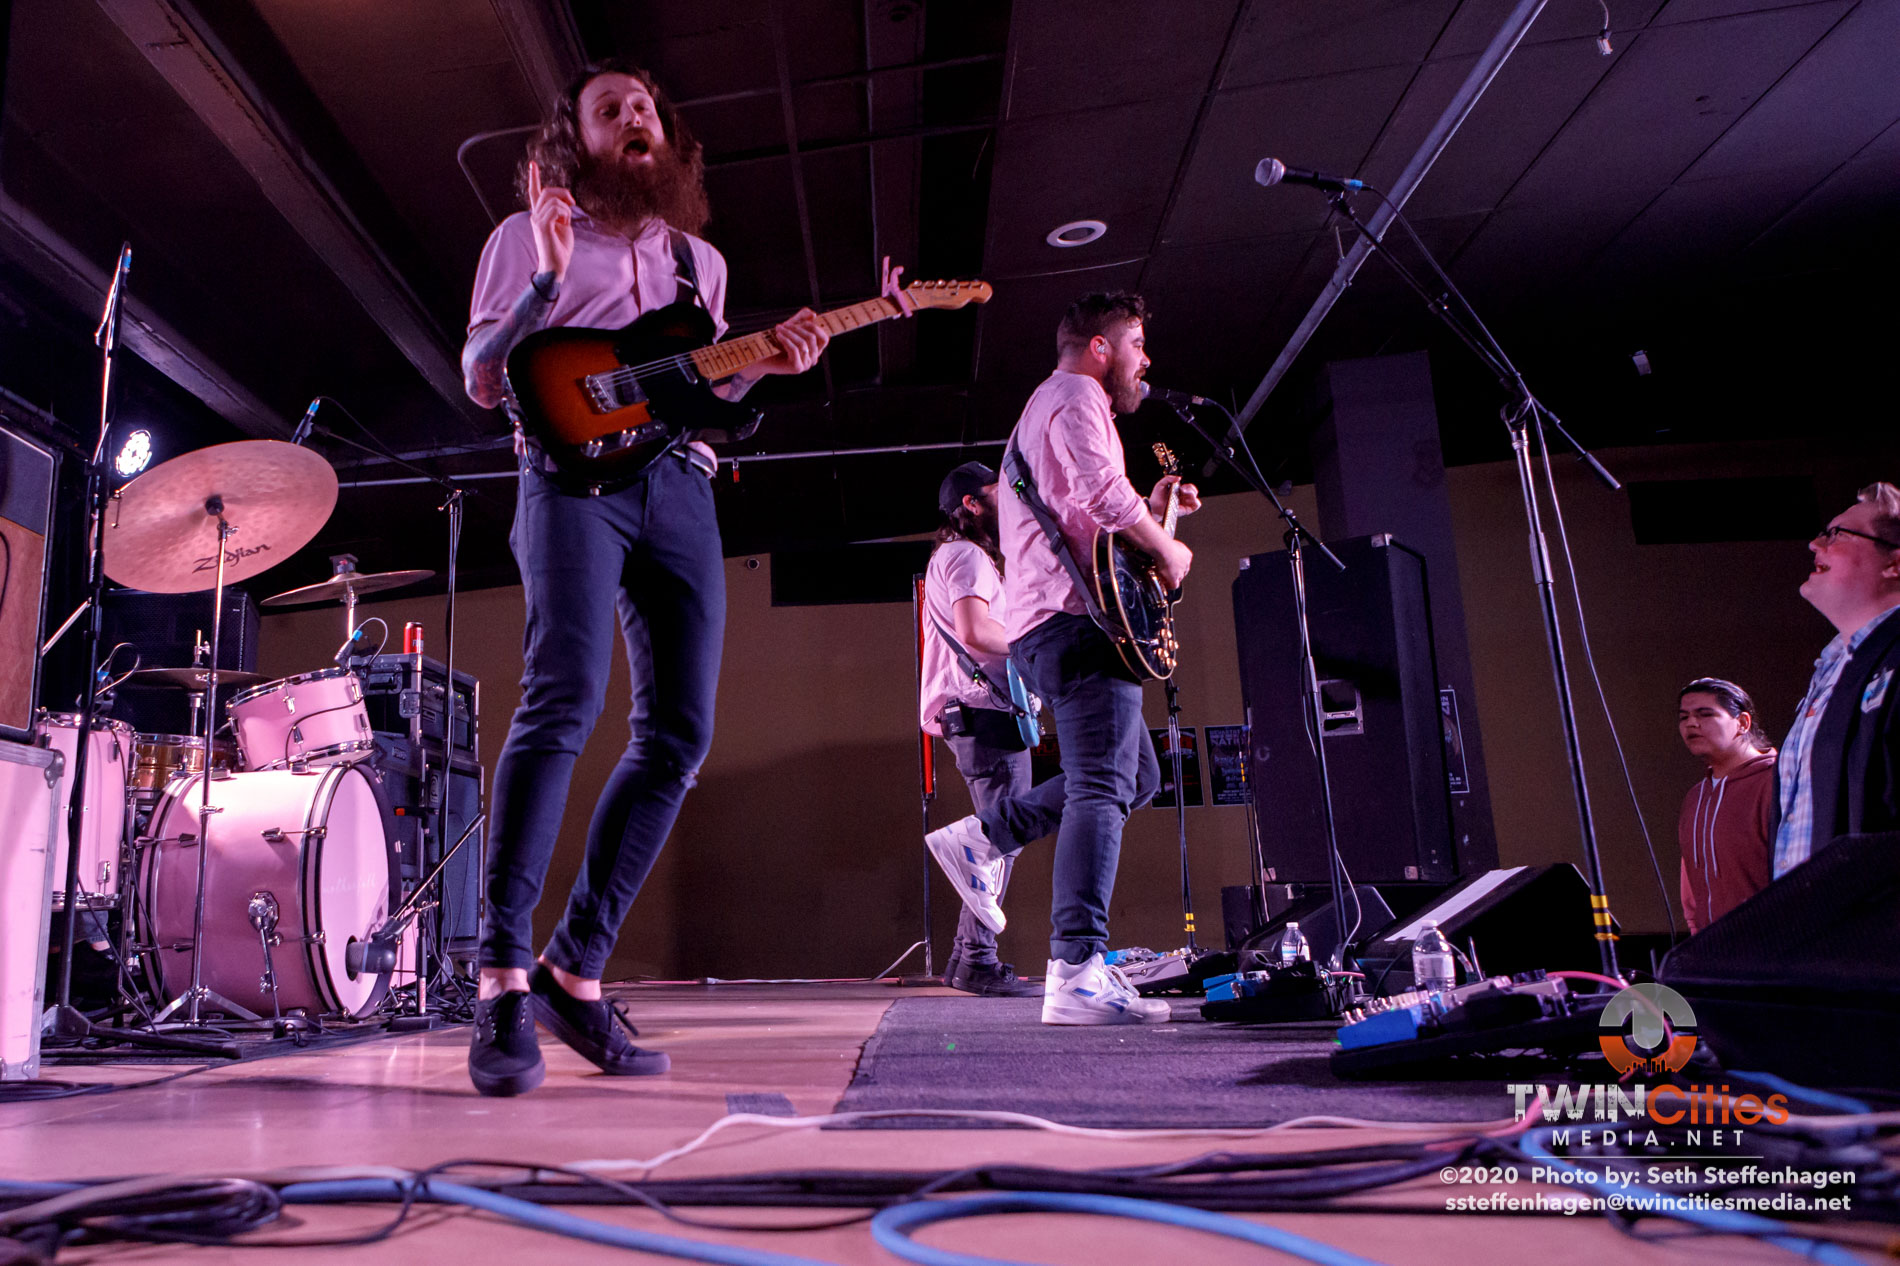 February 23, 2020 - Minneapolis, Minnesota, United States - Motherfolk live in concert at the Skyway Theatre Studio B along with Coyote Kid as the opener.(Photo by Seth Steffenhagen/Steffenhagen Photography)